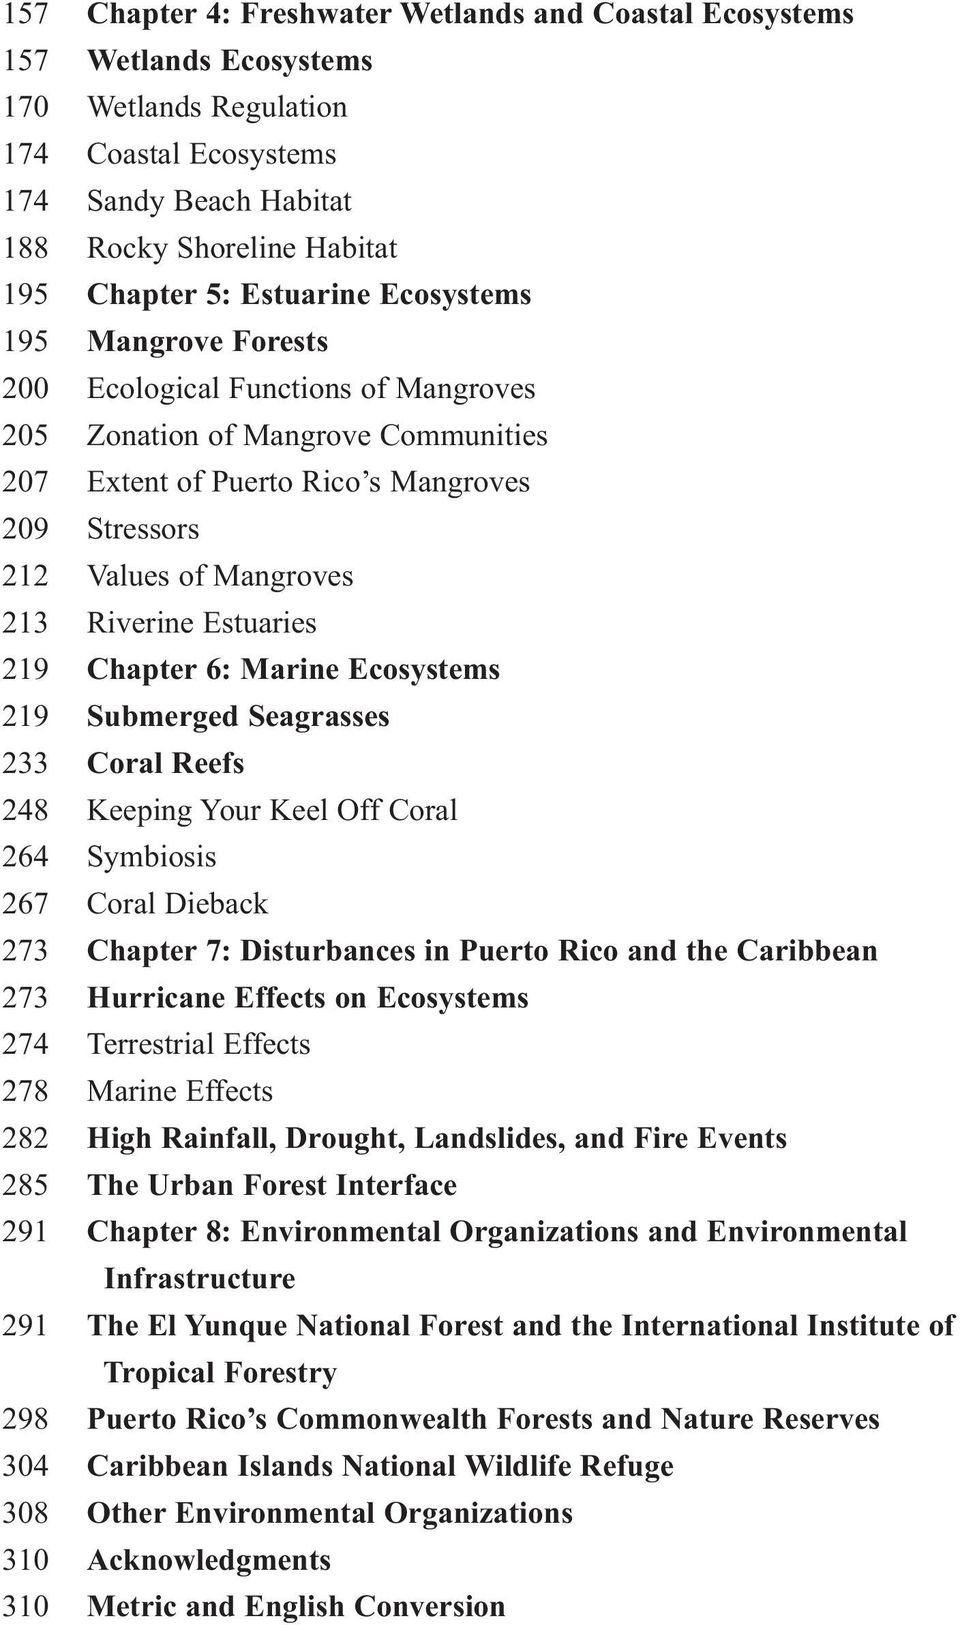 Riverine Estuaries 219 Chapter 6: Marine Ecosystems 219 Submerged Seagrasses 233 Coral Reefs 248 Keeping Your Keel Off Coral 264 Symbiosis 267 Coral Dieback 273 Chapter 7: Disturbances in Puerto Rico